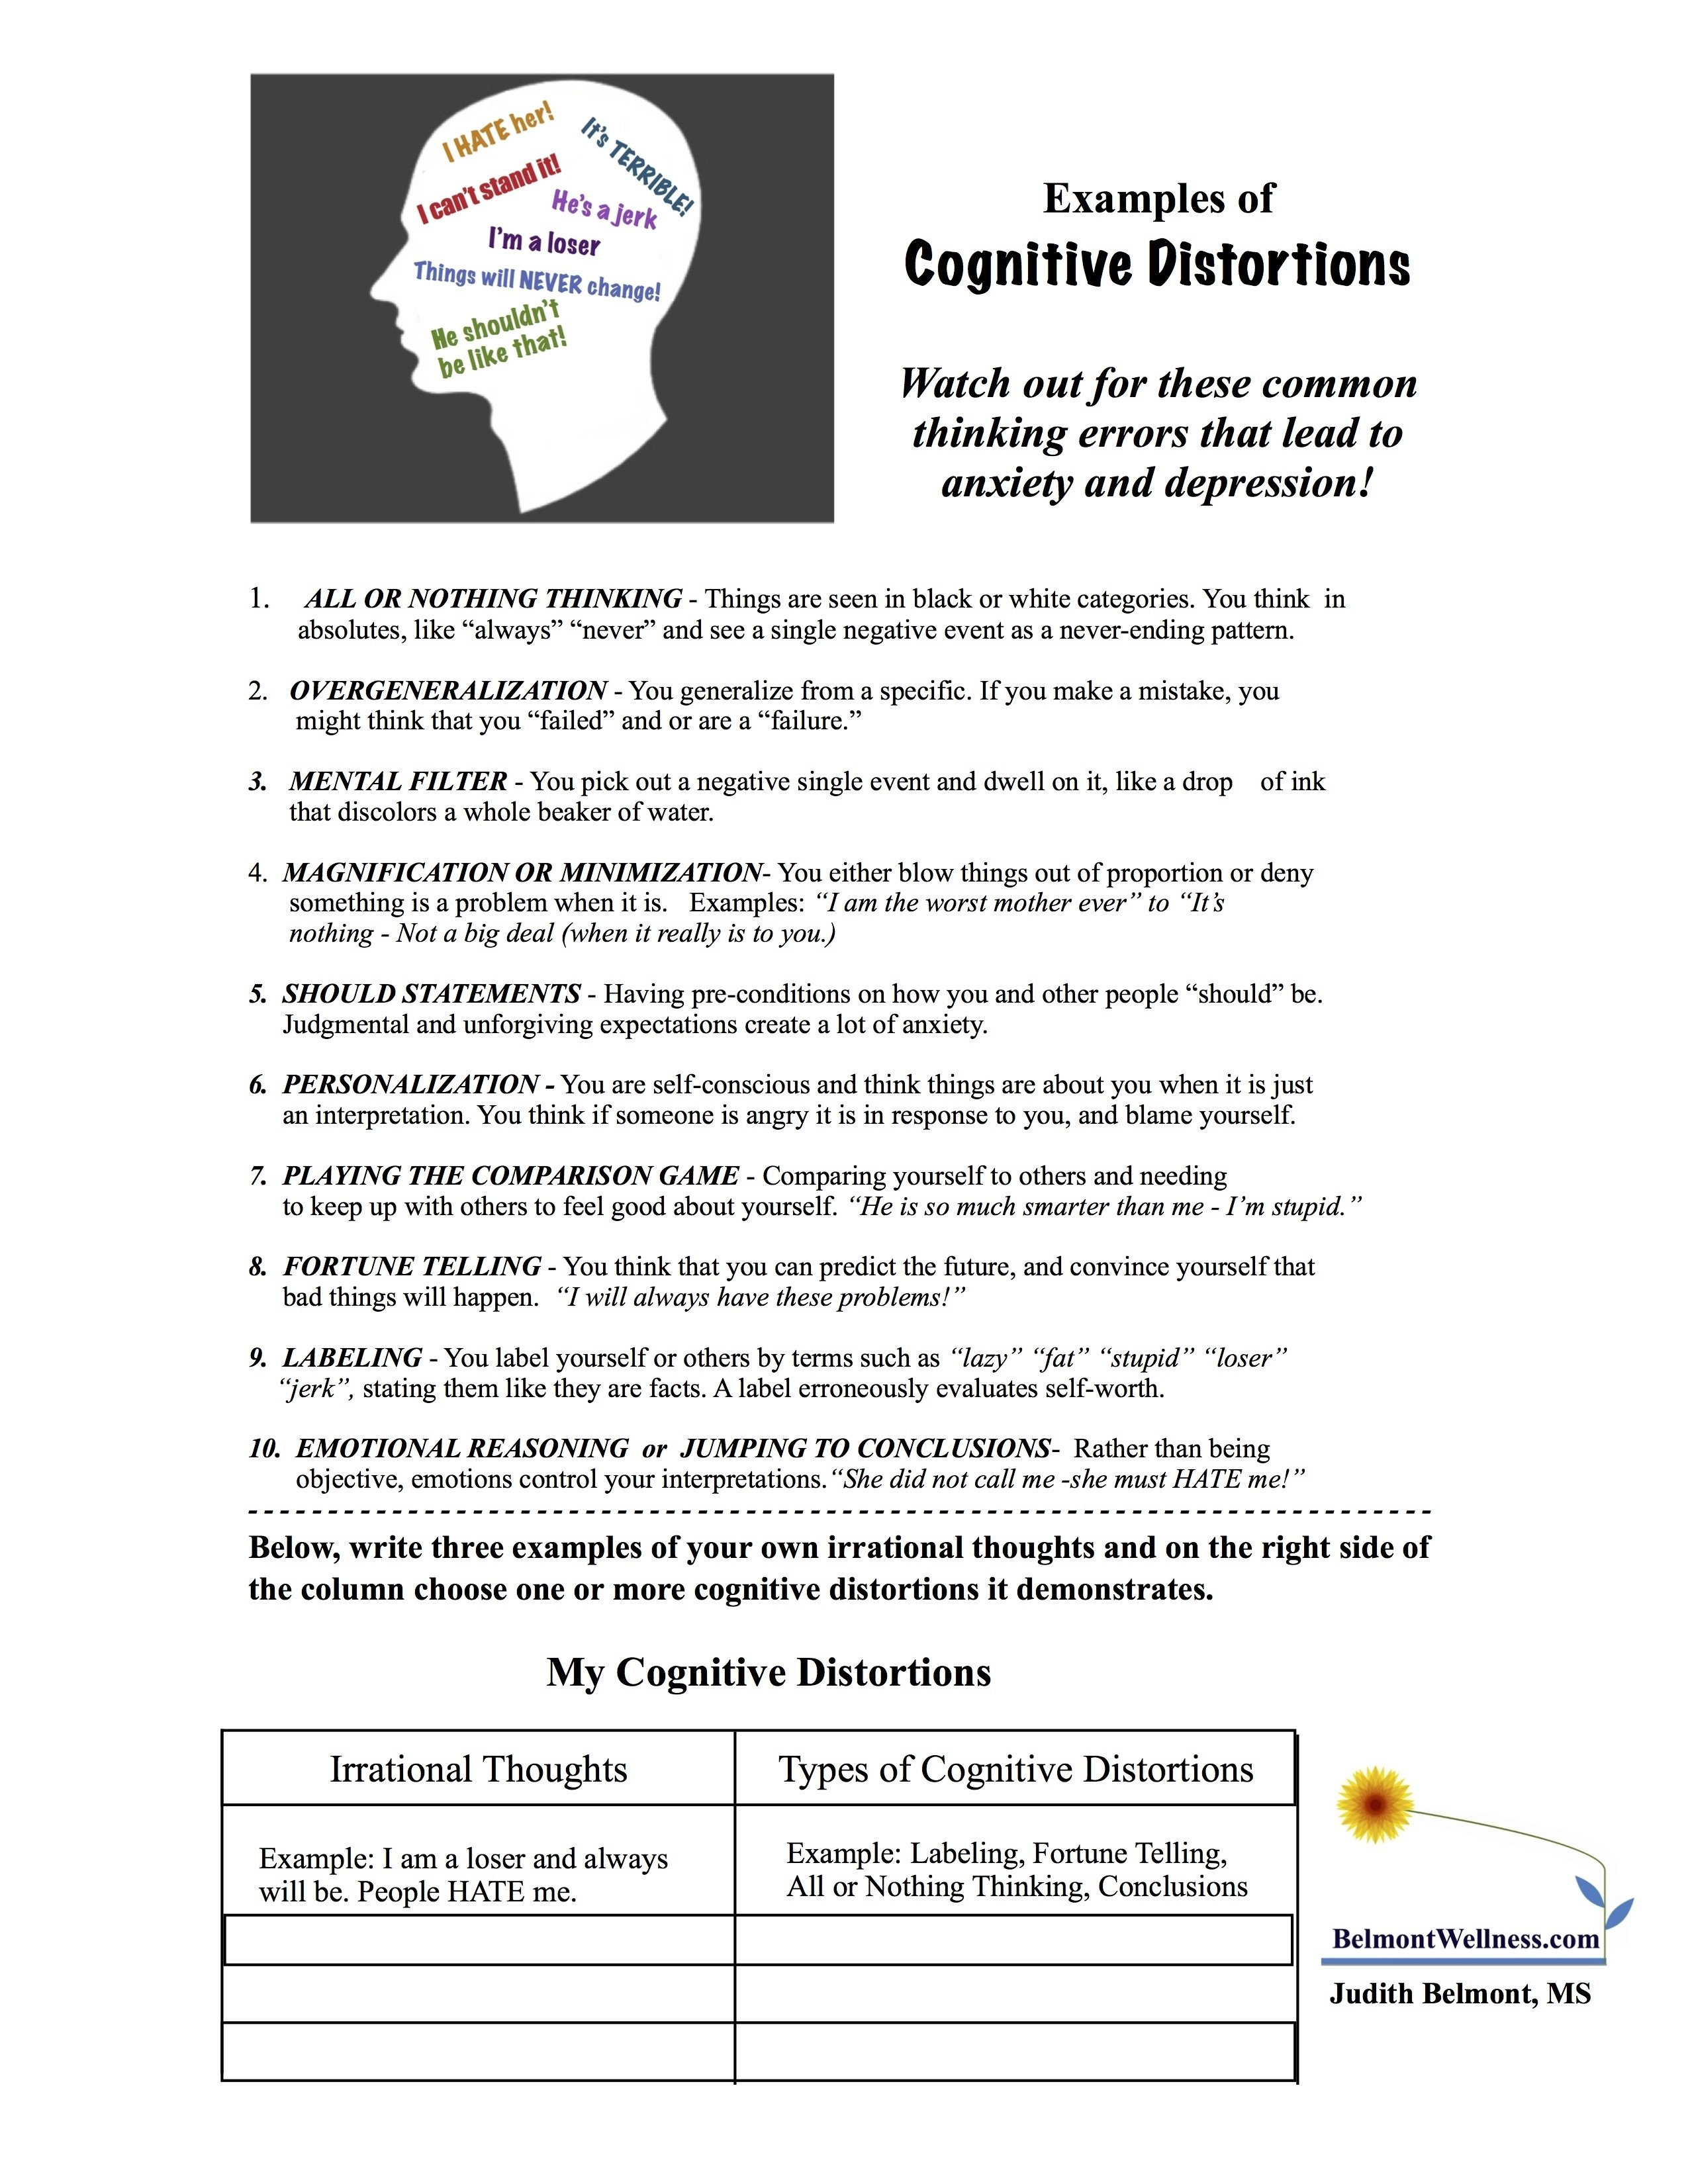 10 Fantastic Group Therapy Ideas For Adults psychoeducational handouts quizzes and group activities judy 2021